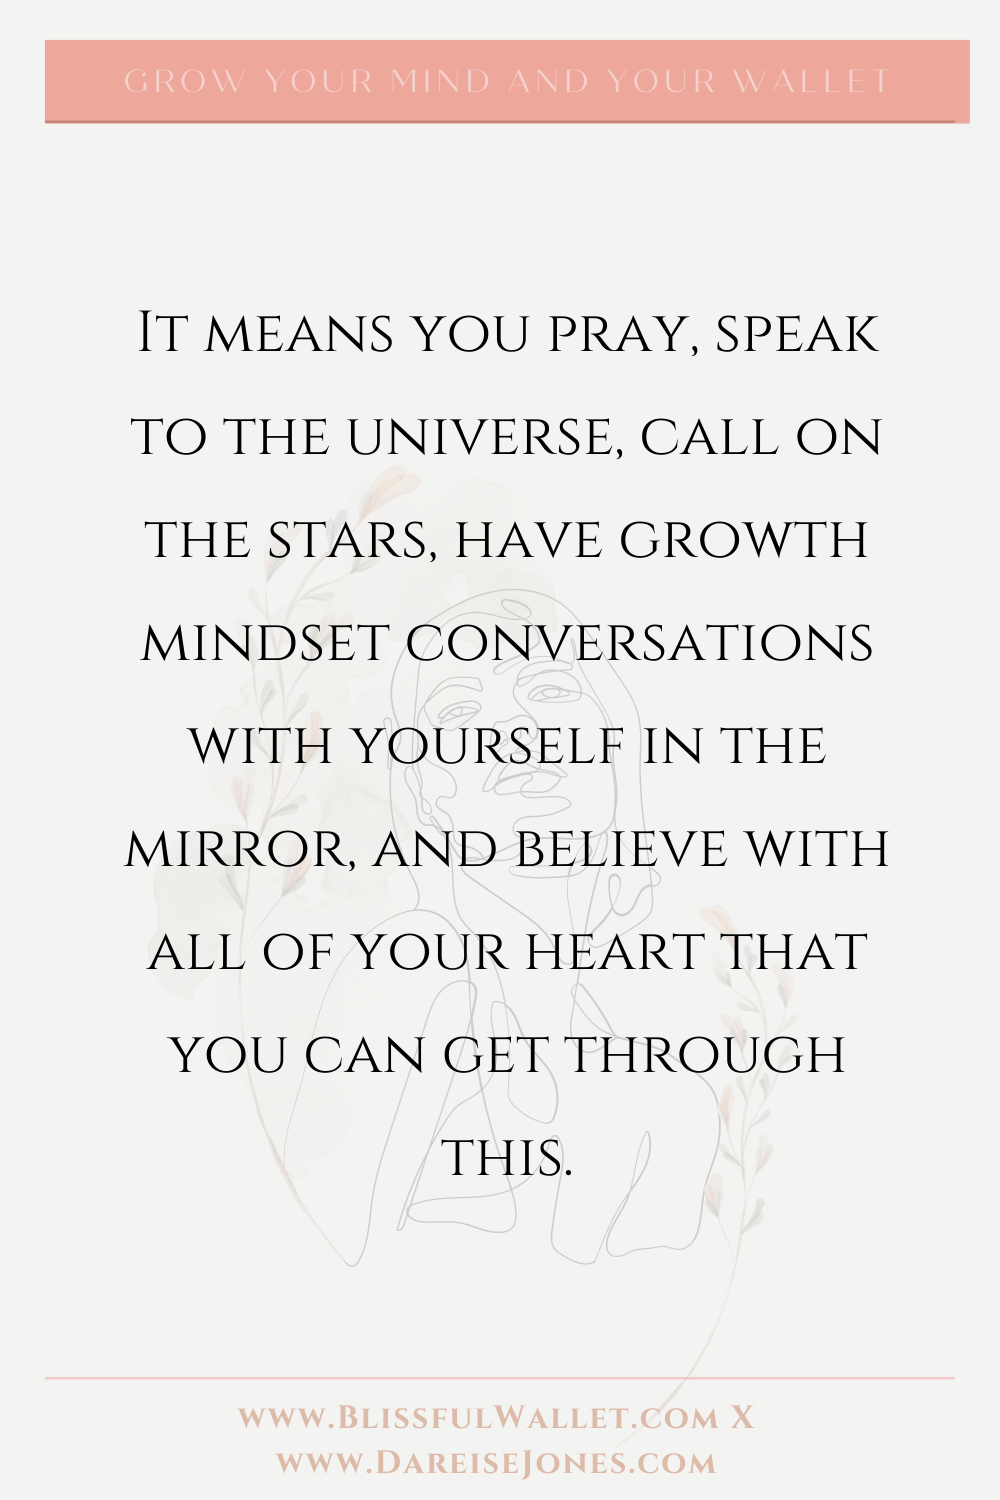 How can you connect with your spirituality? You can pray, speak to the universe, believe in the stars, talk to yourself and believe fully that you deserve a good life. A better life with positive thoughts, positive actions and ultimately a positive mindset